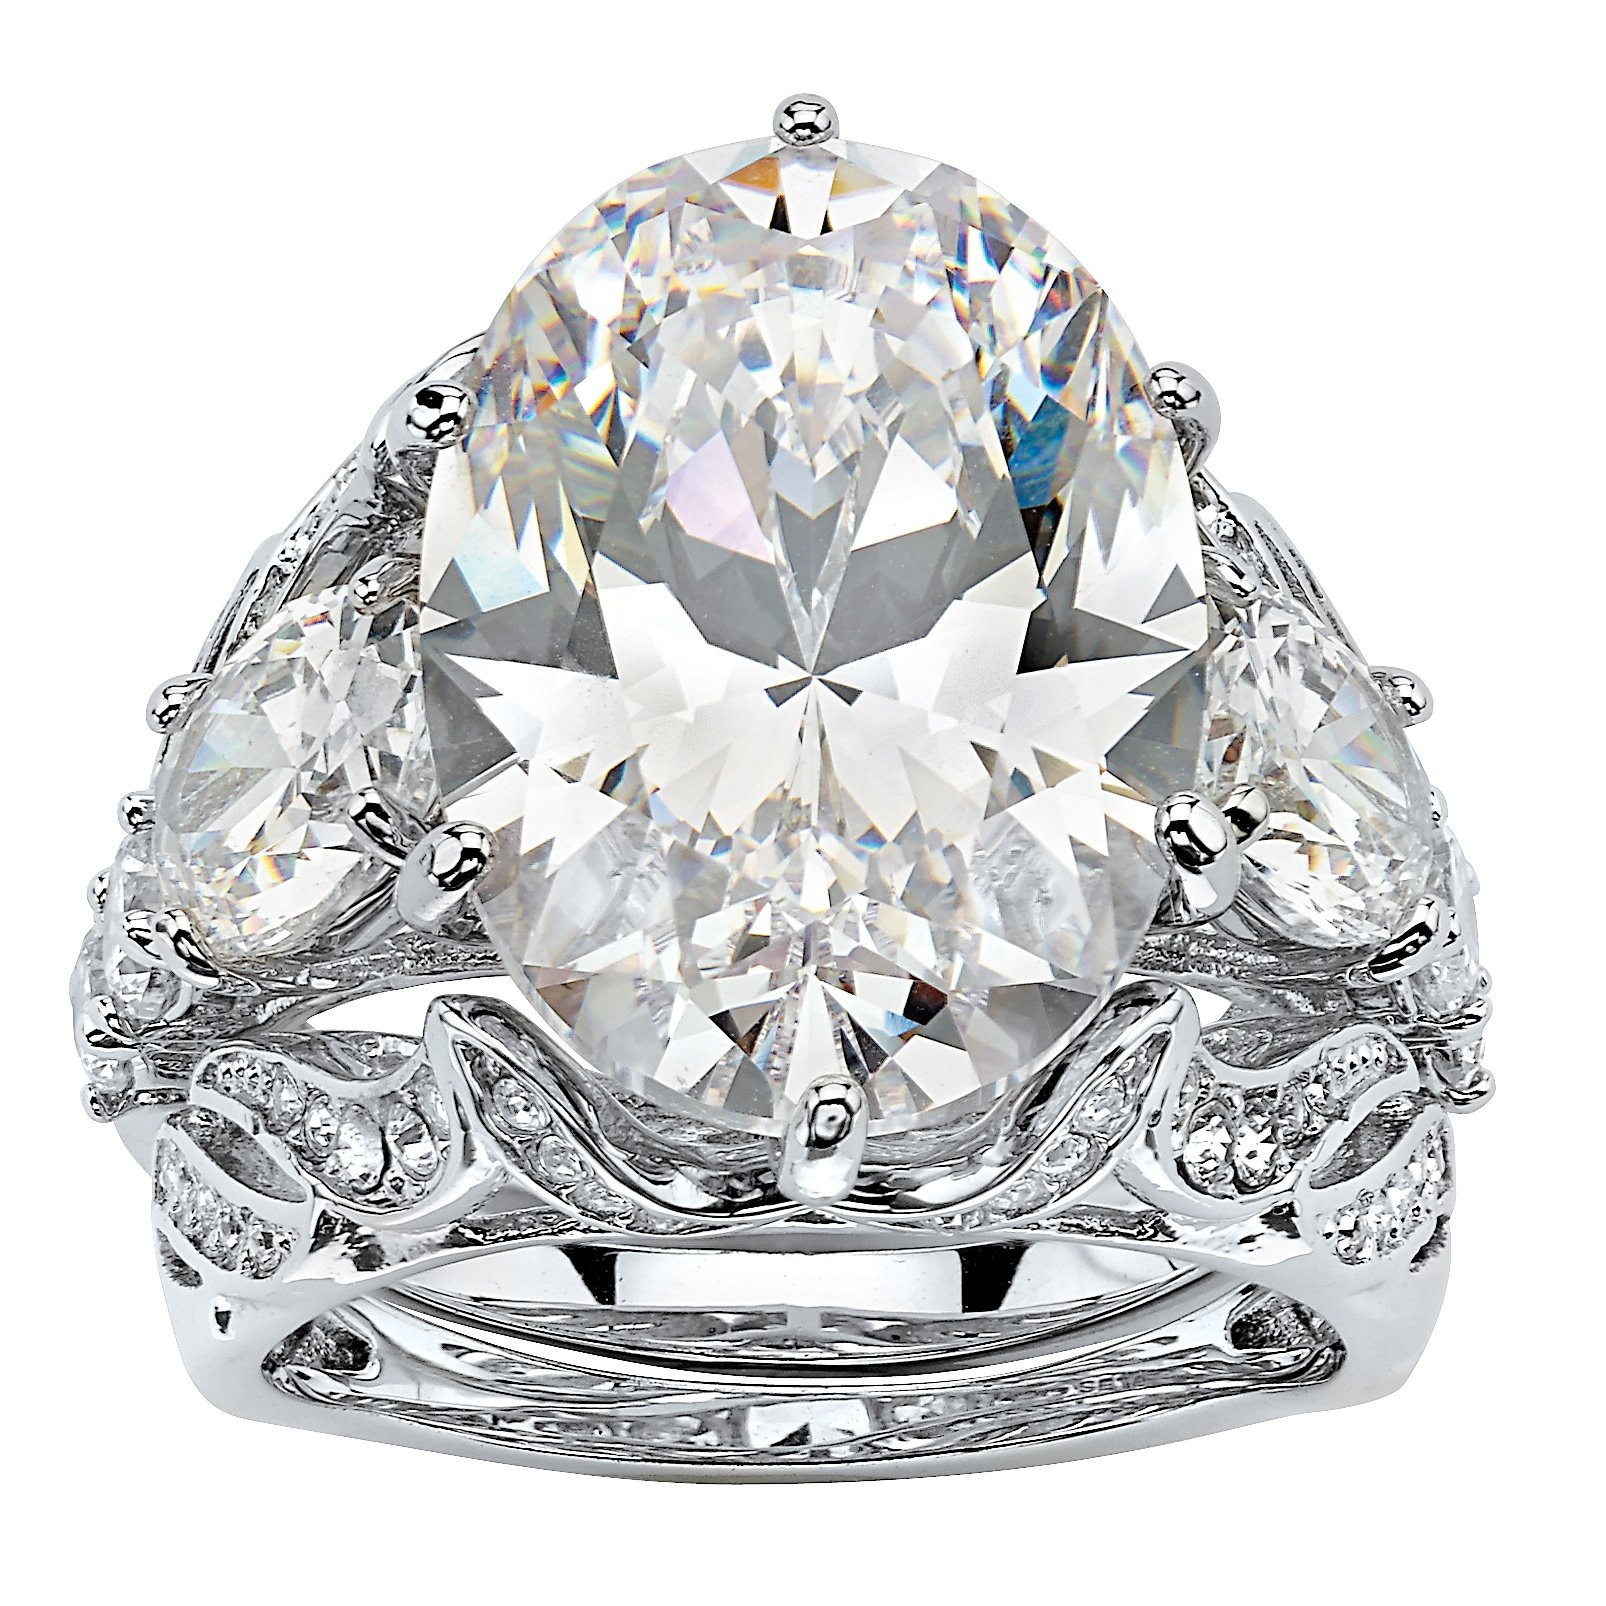 Palm Beach Jewelry Oval-Cut White Cubic Zirconia Platinum-Plated 3-Piece Bridal Ring Set Size 9